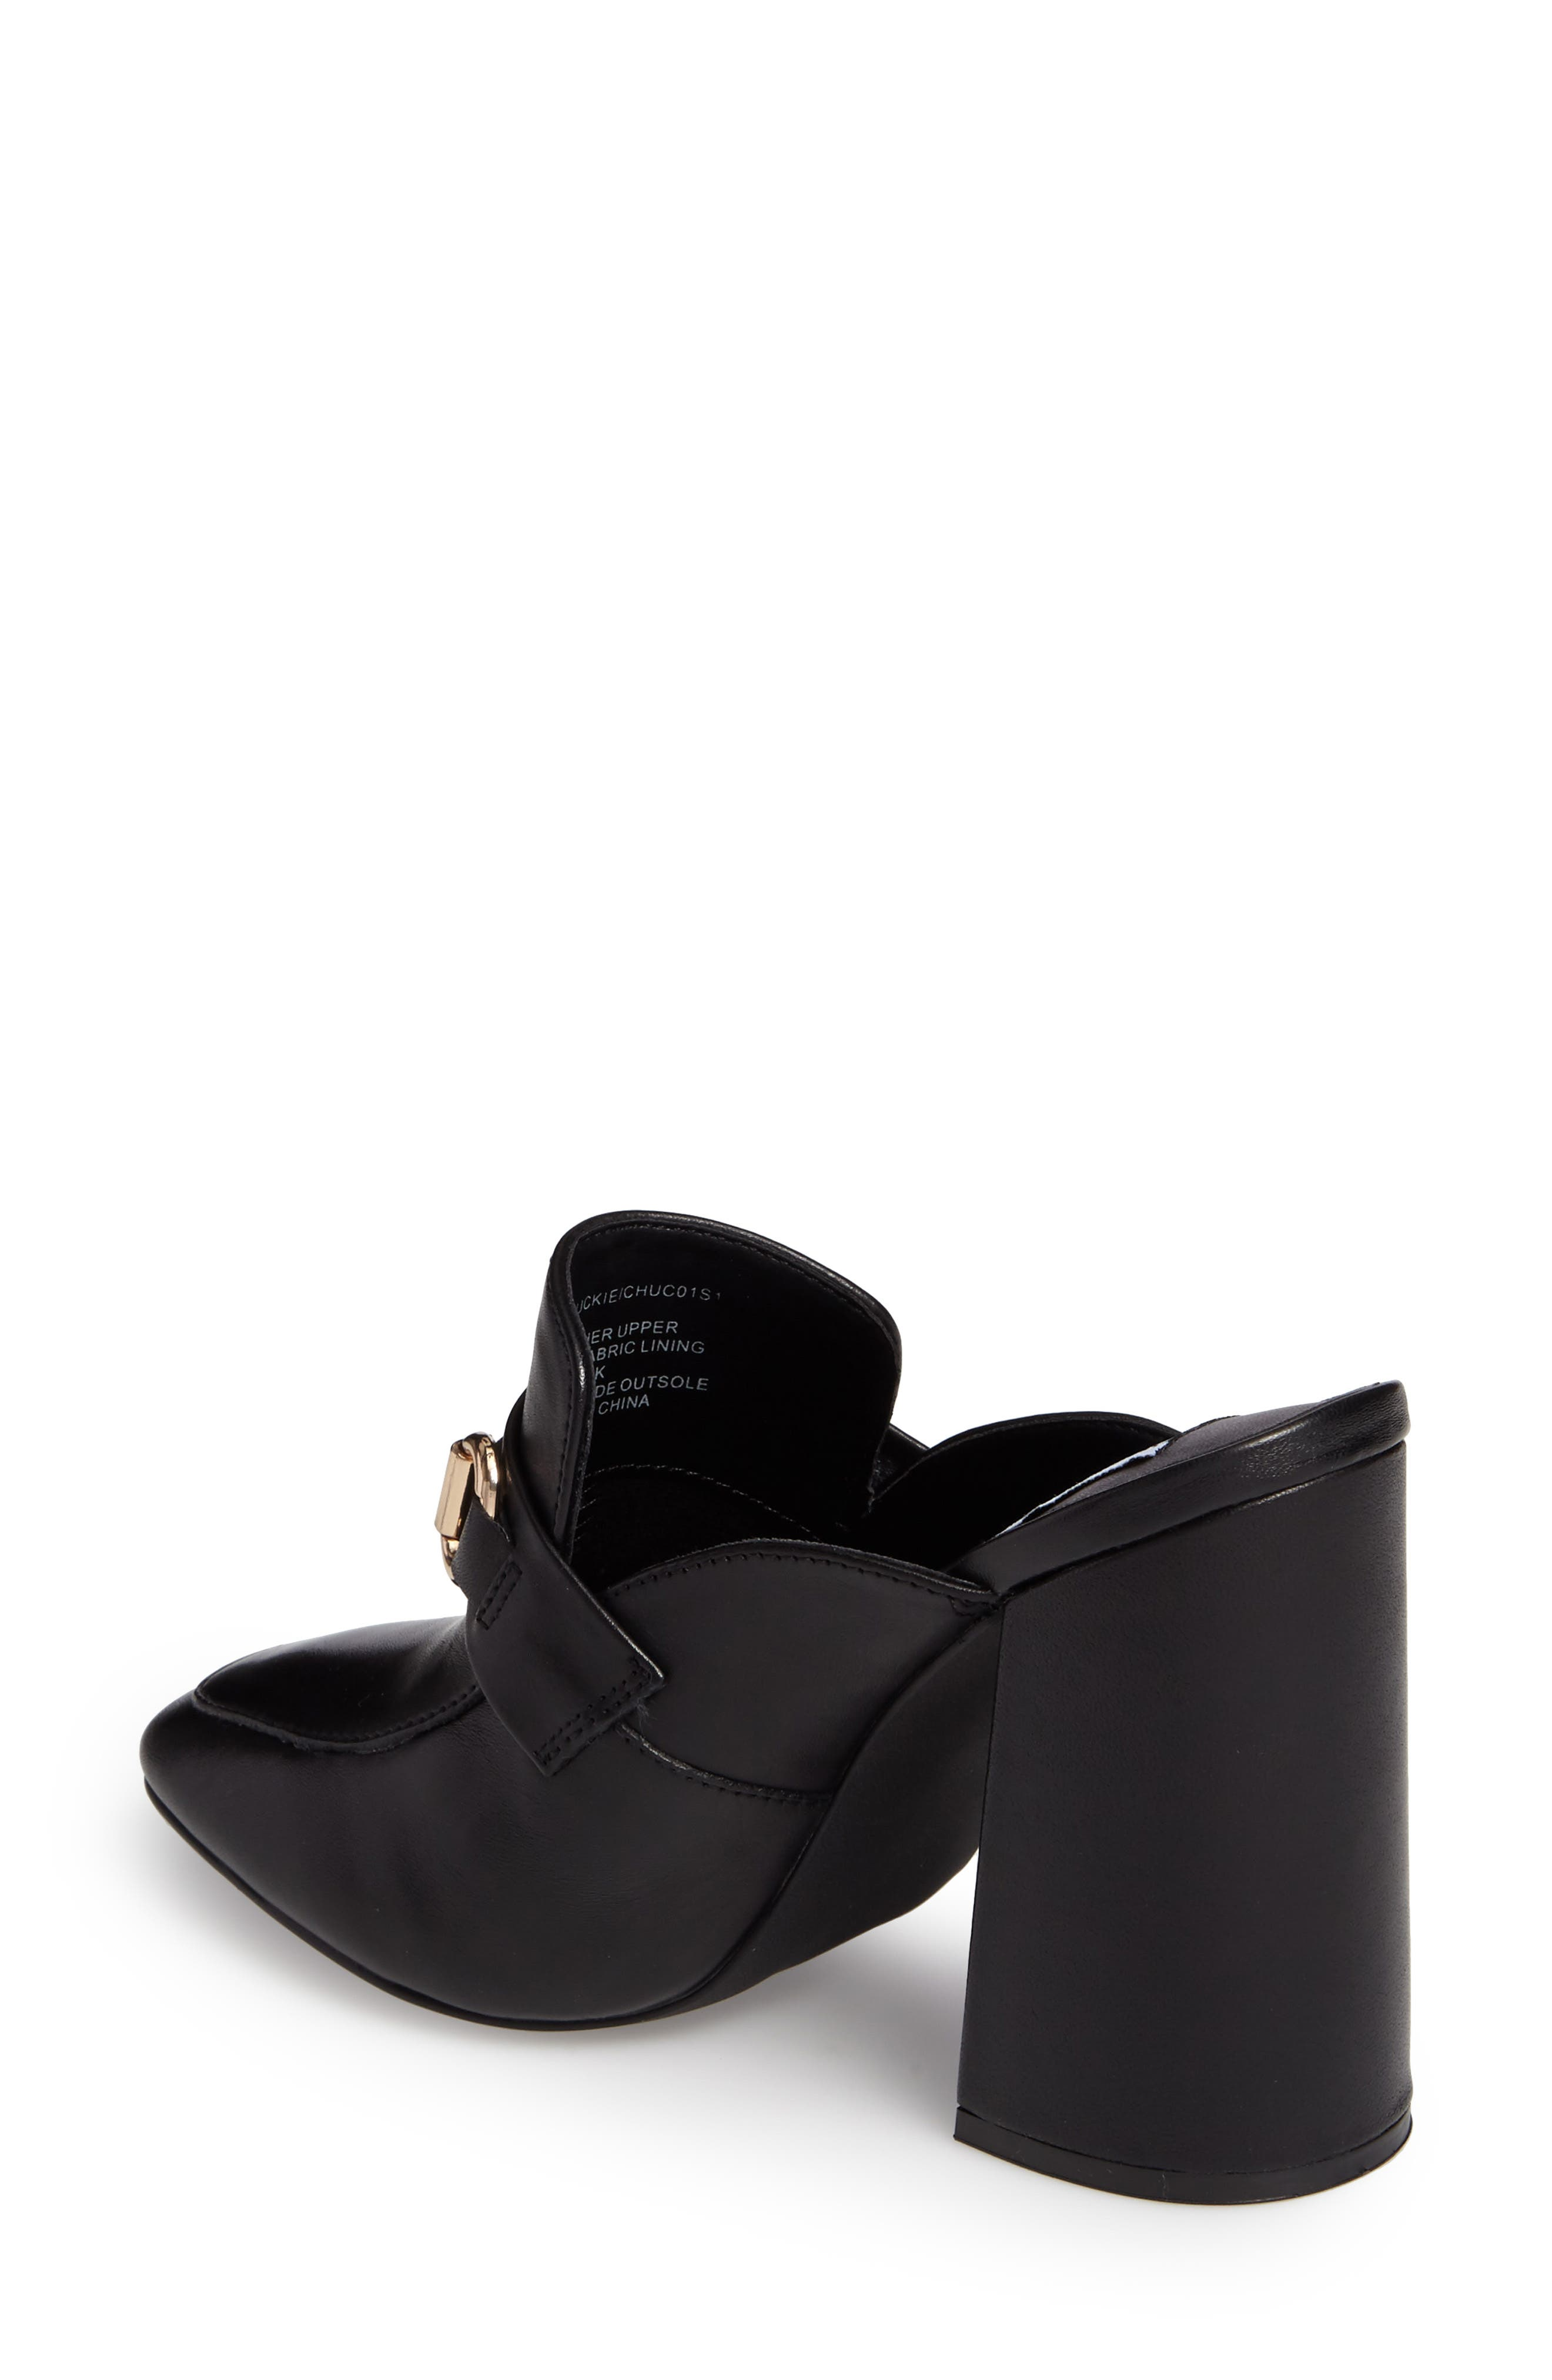 Chuckie Flared Heel Loafer Mule,                             Alternate thumbnail 2, color,                             001